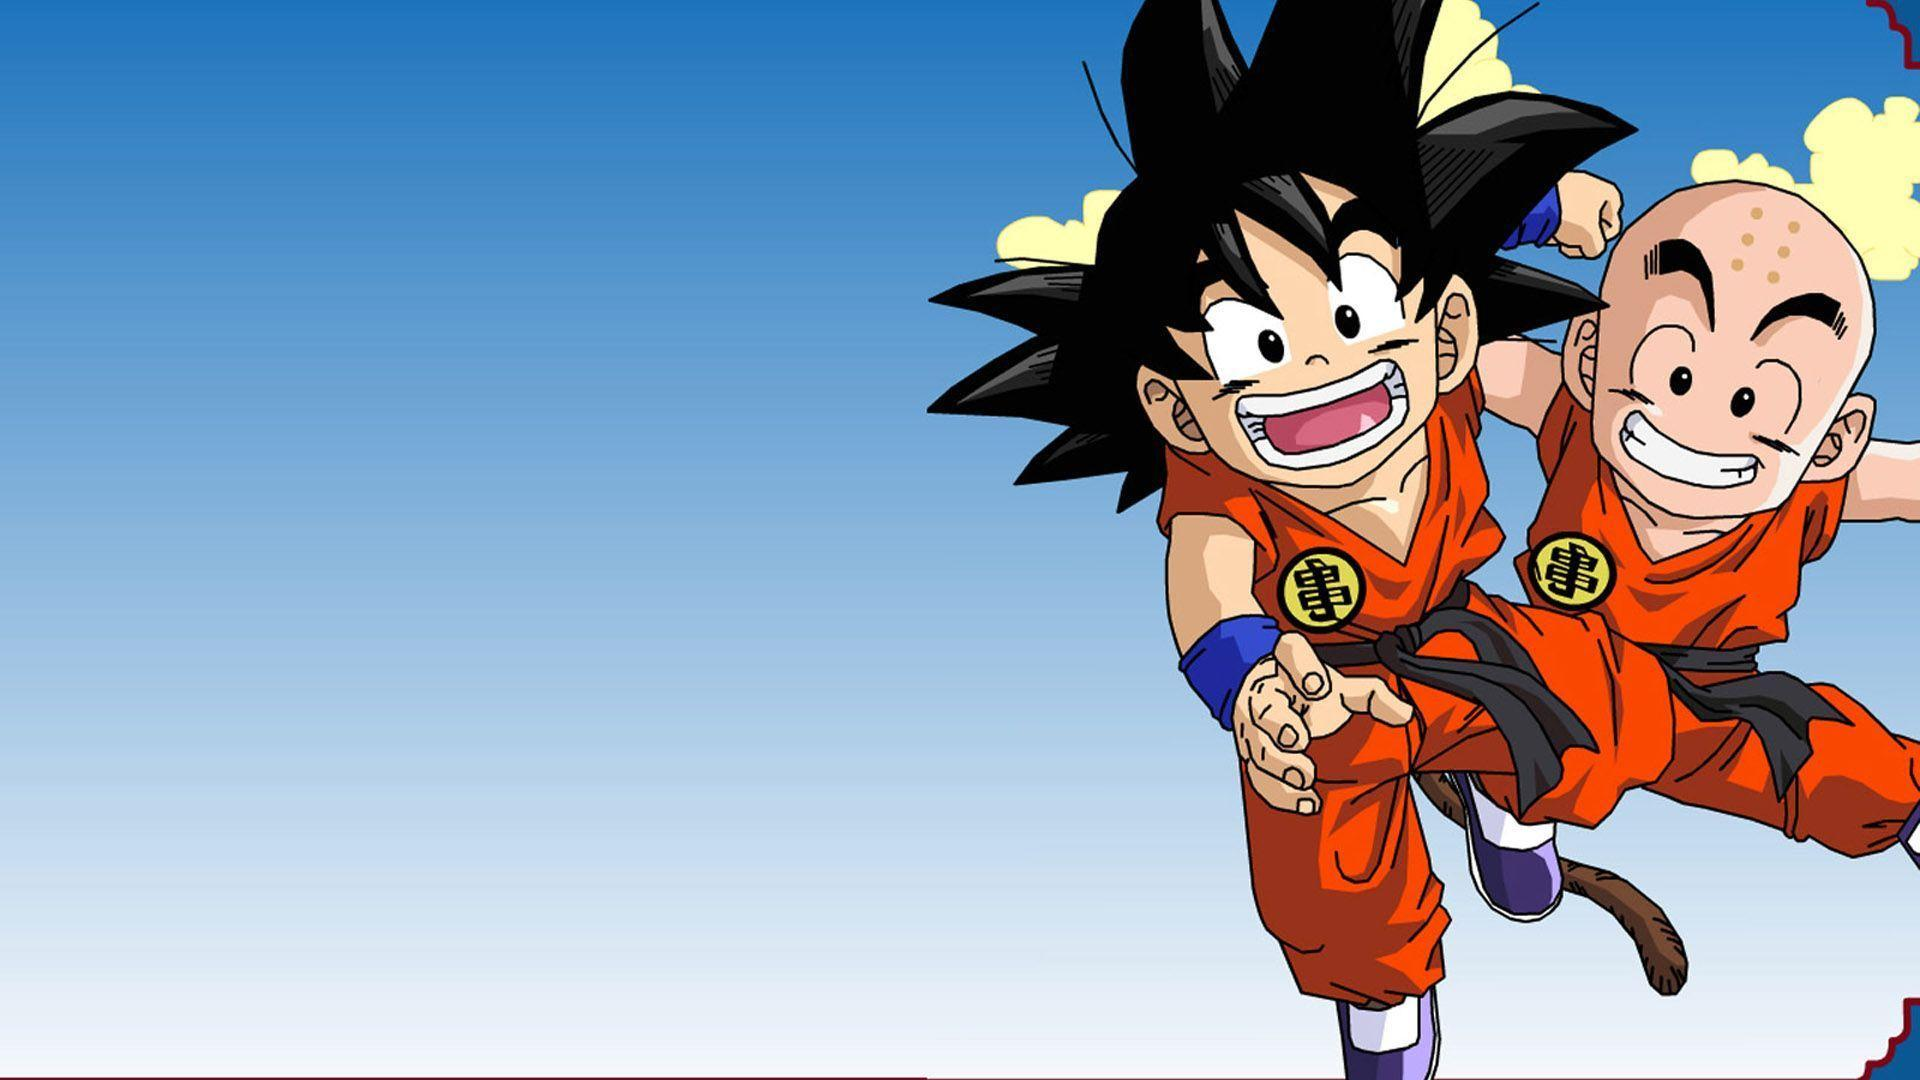 Download Dragonball Wallpaper 1920x1080